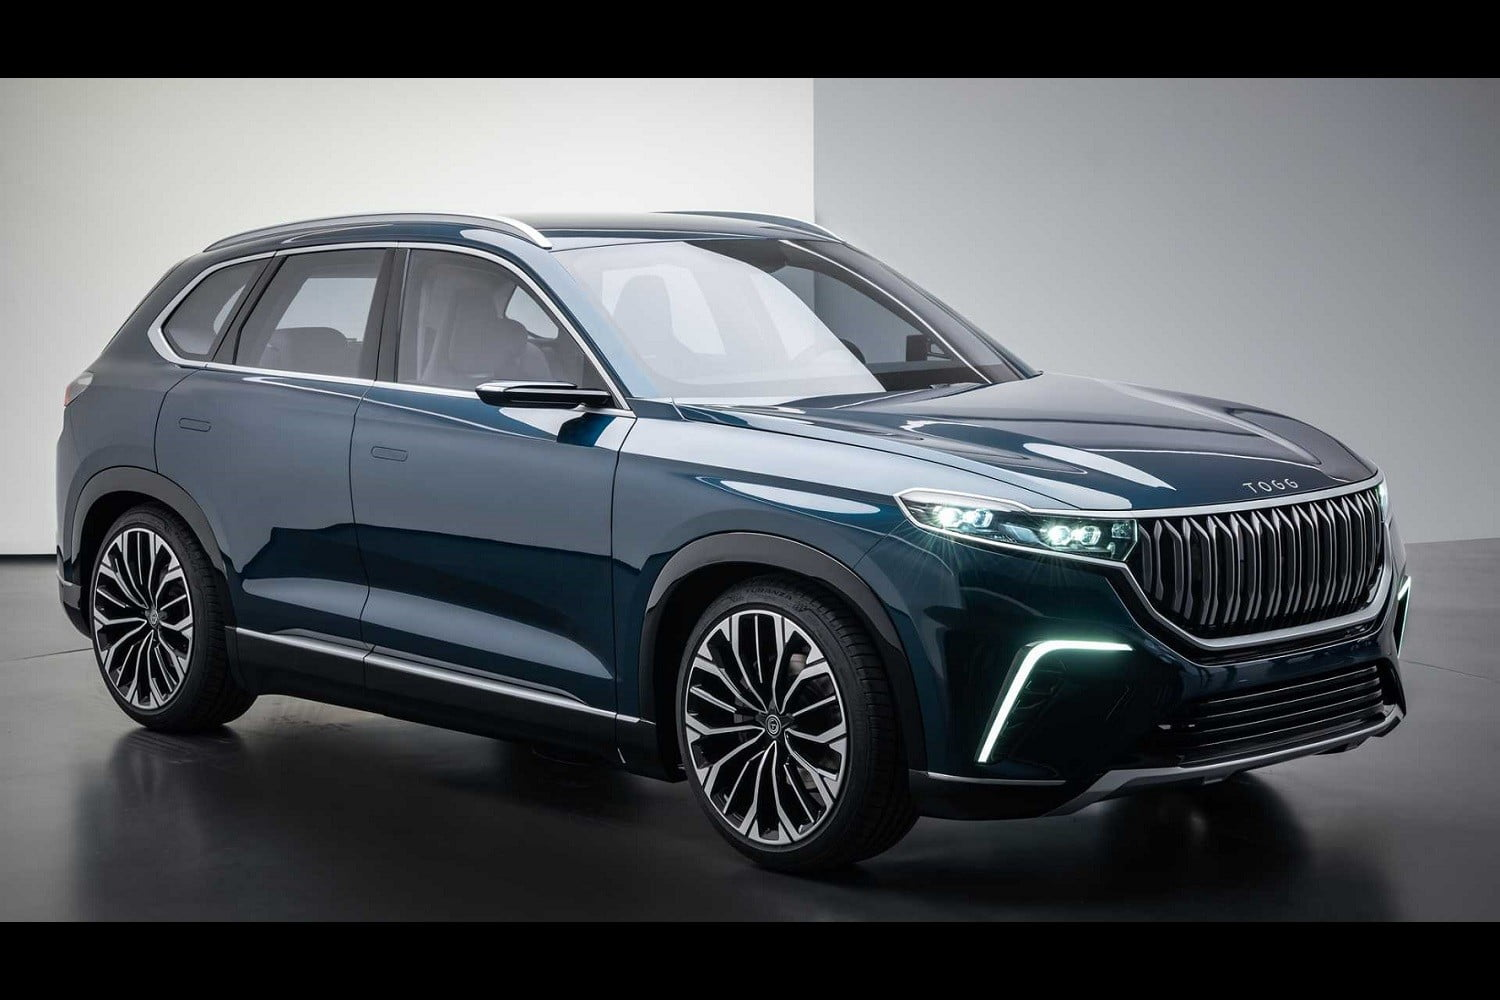 TOGG electric SUV front view